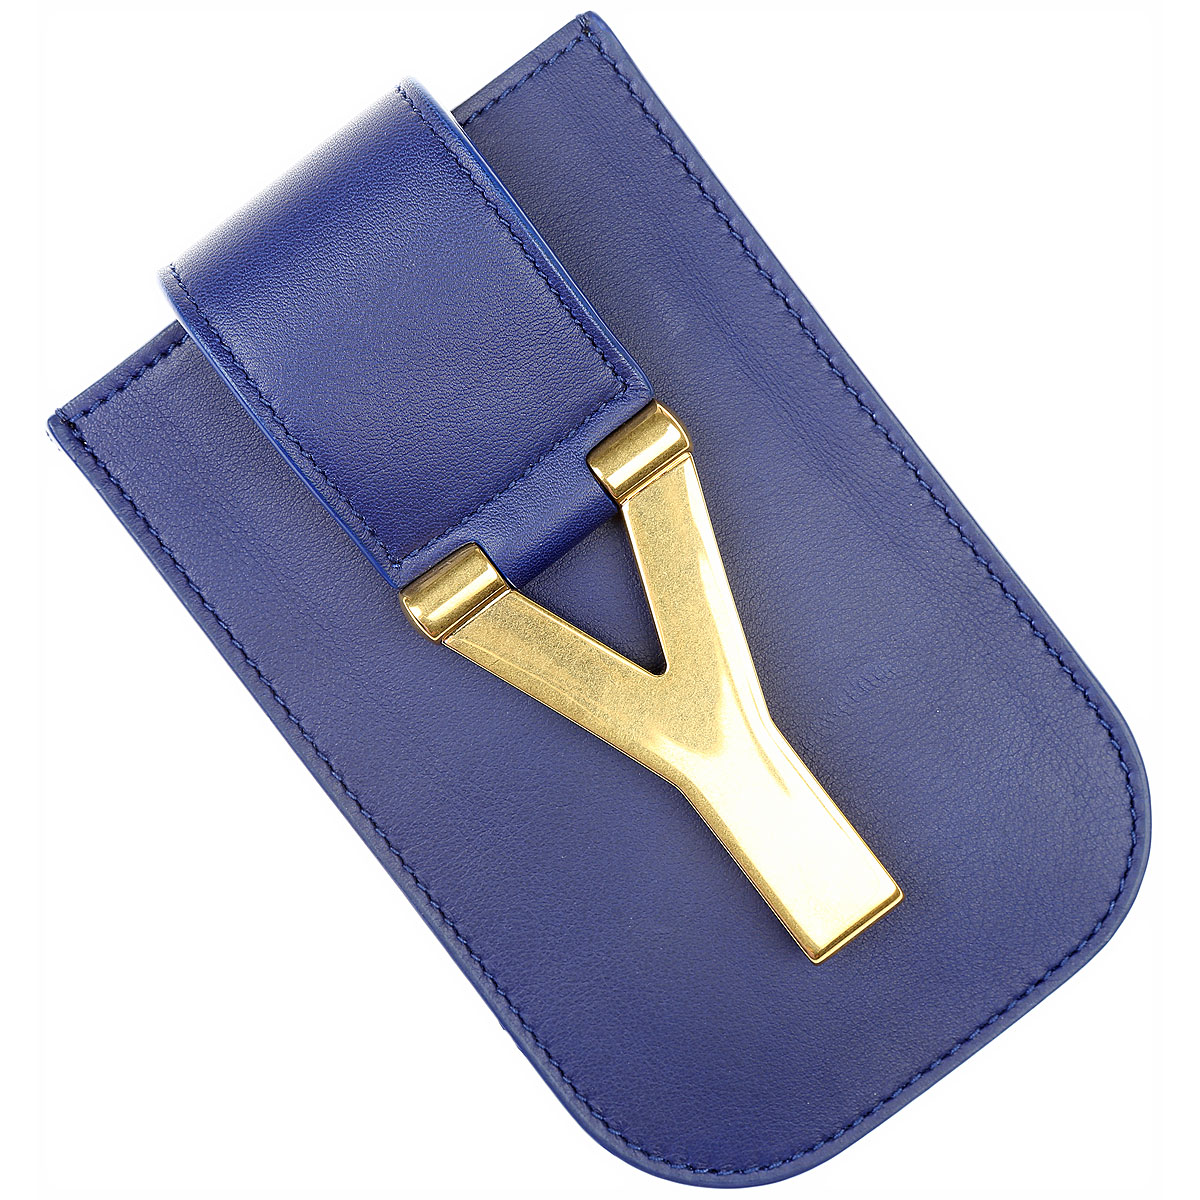 Yves Saint Laurent Womens Wallets in Outlet Royal Blue USA - GOOFASH